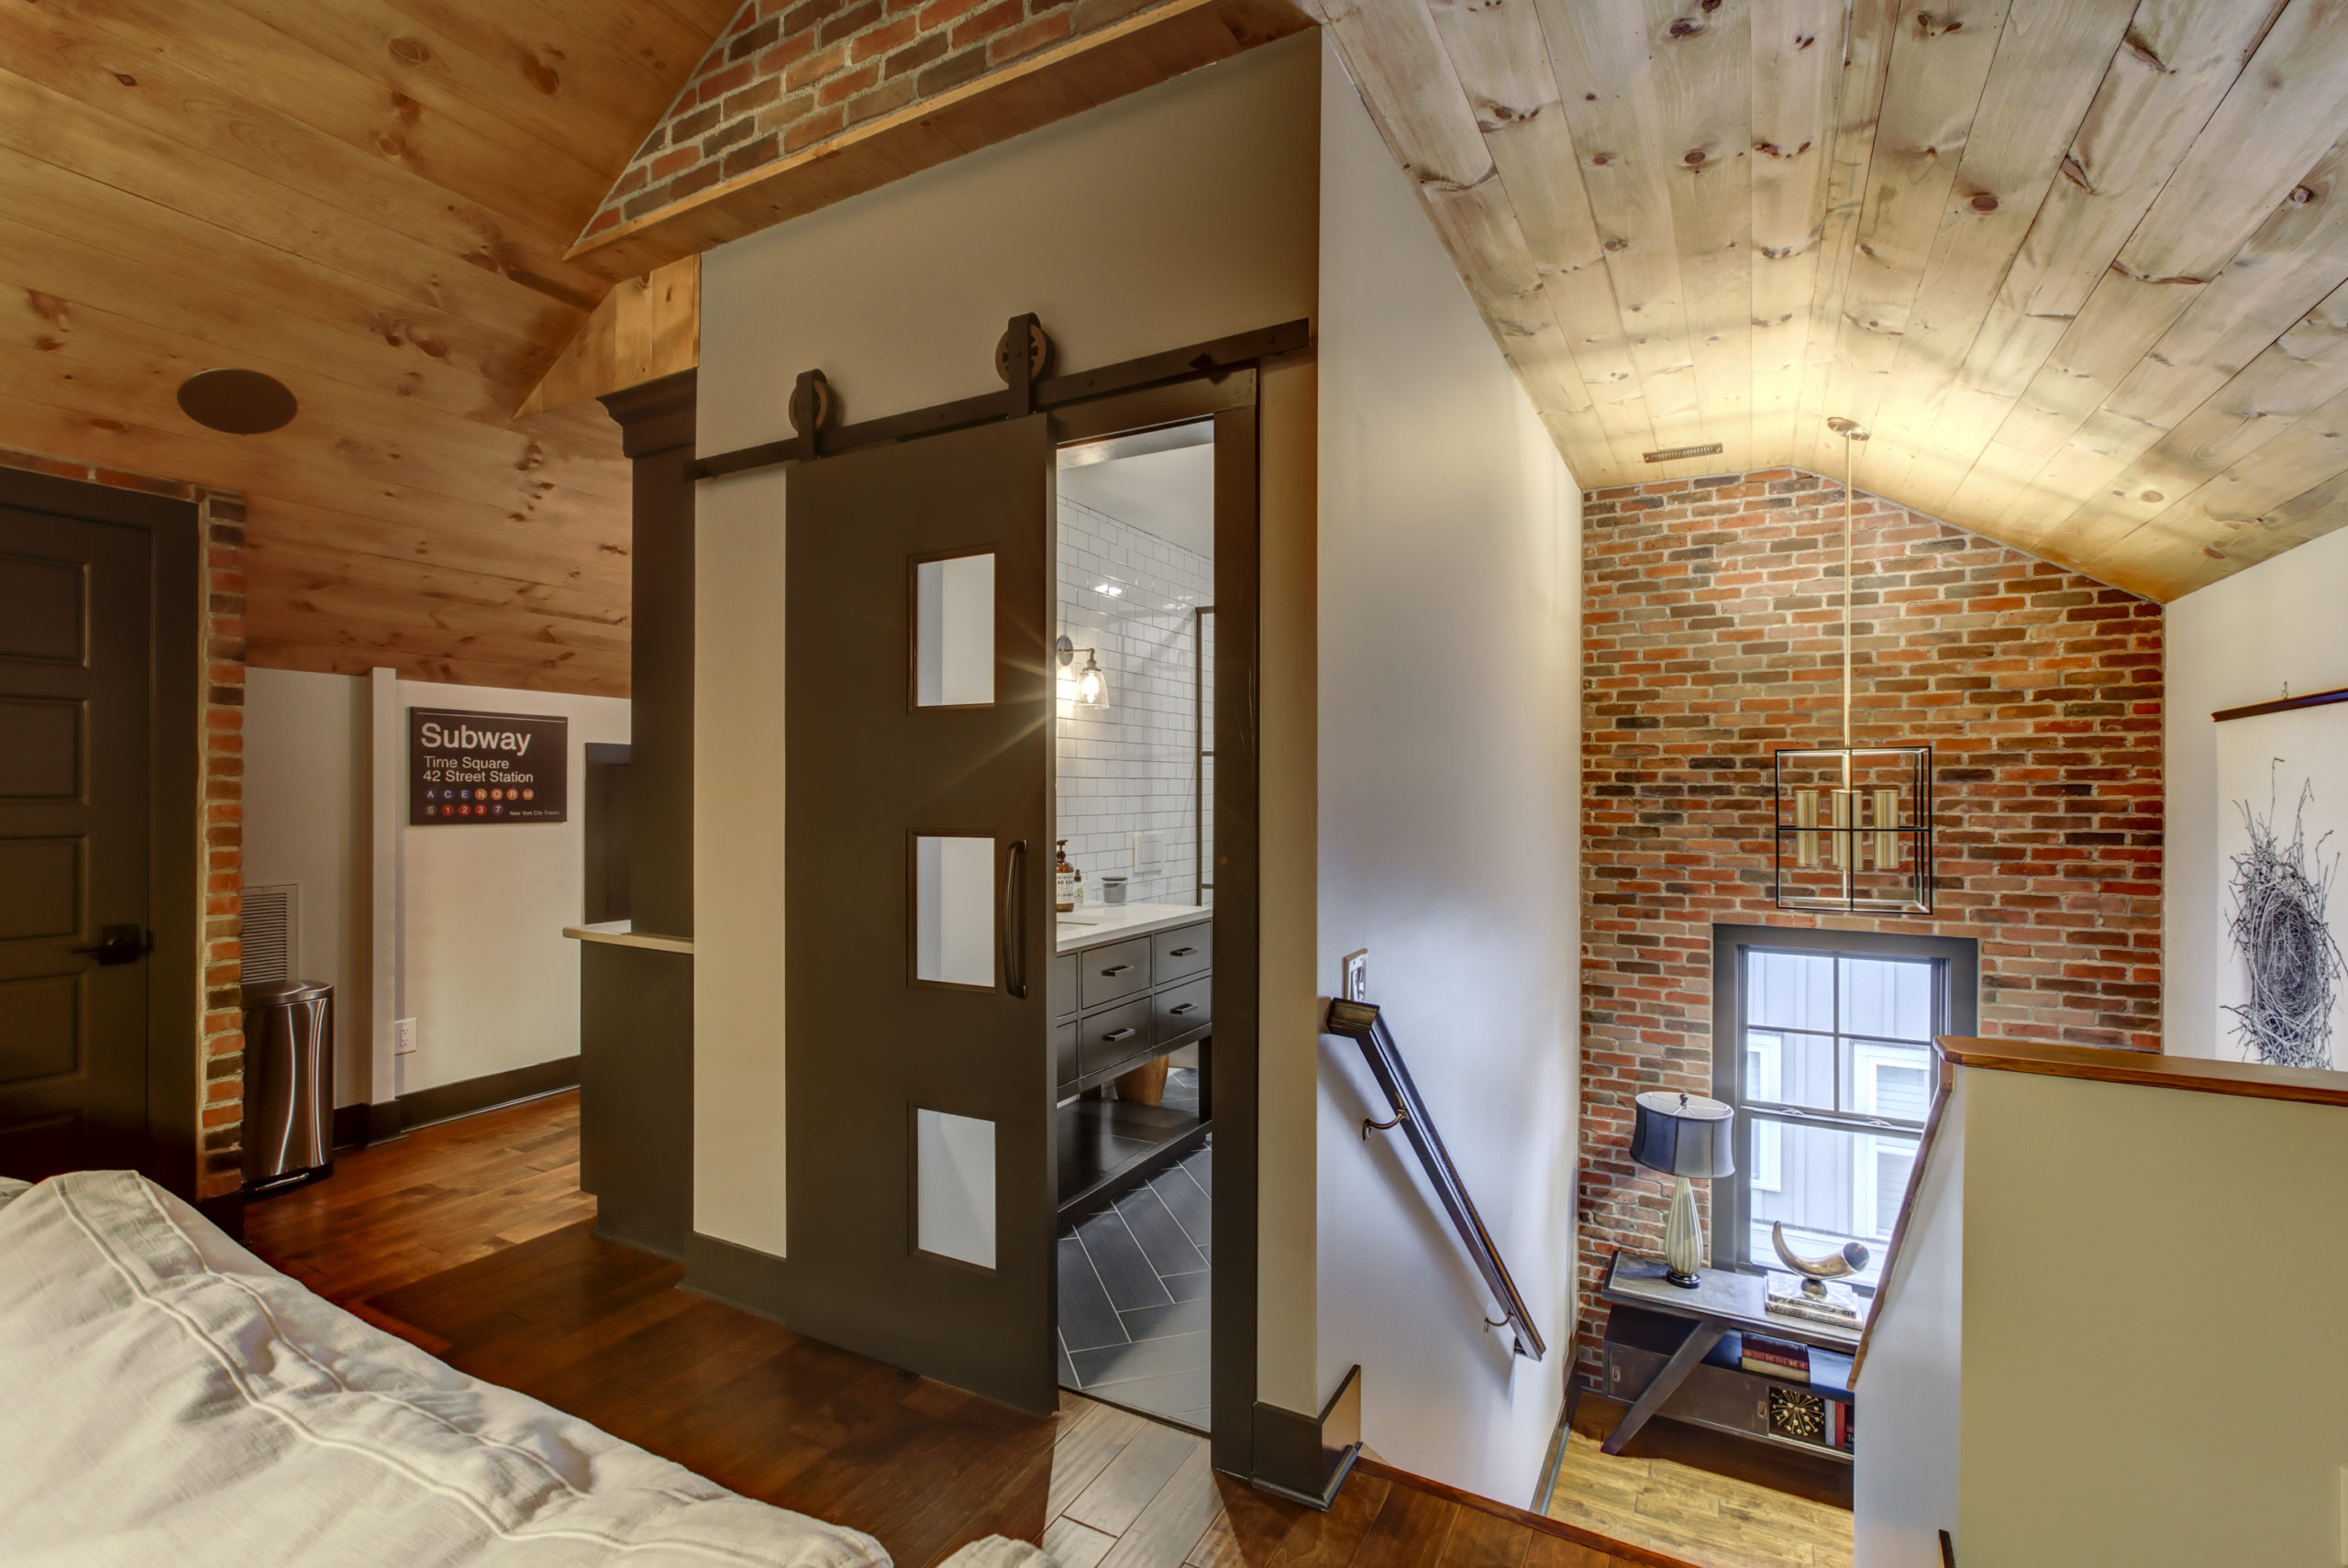 entrance to attic with bathroom and staircase